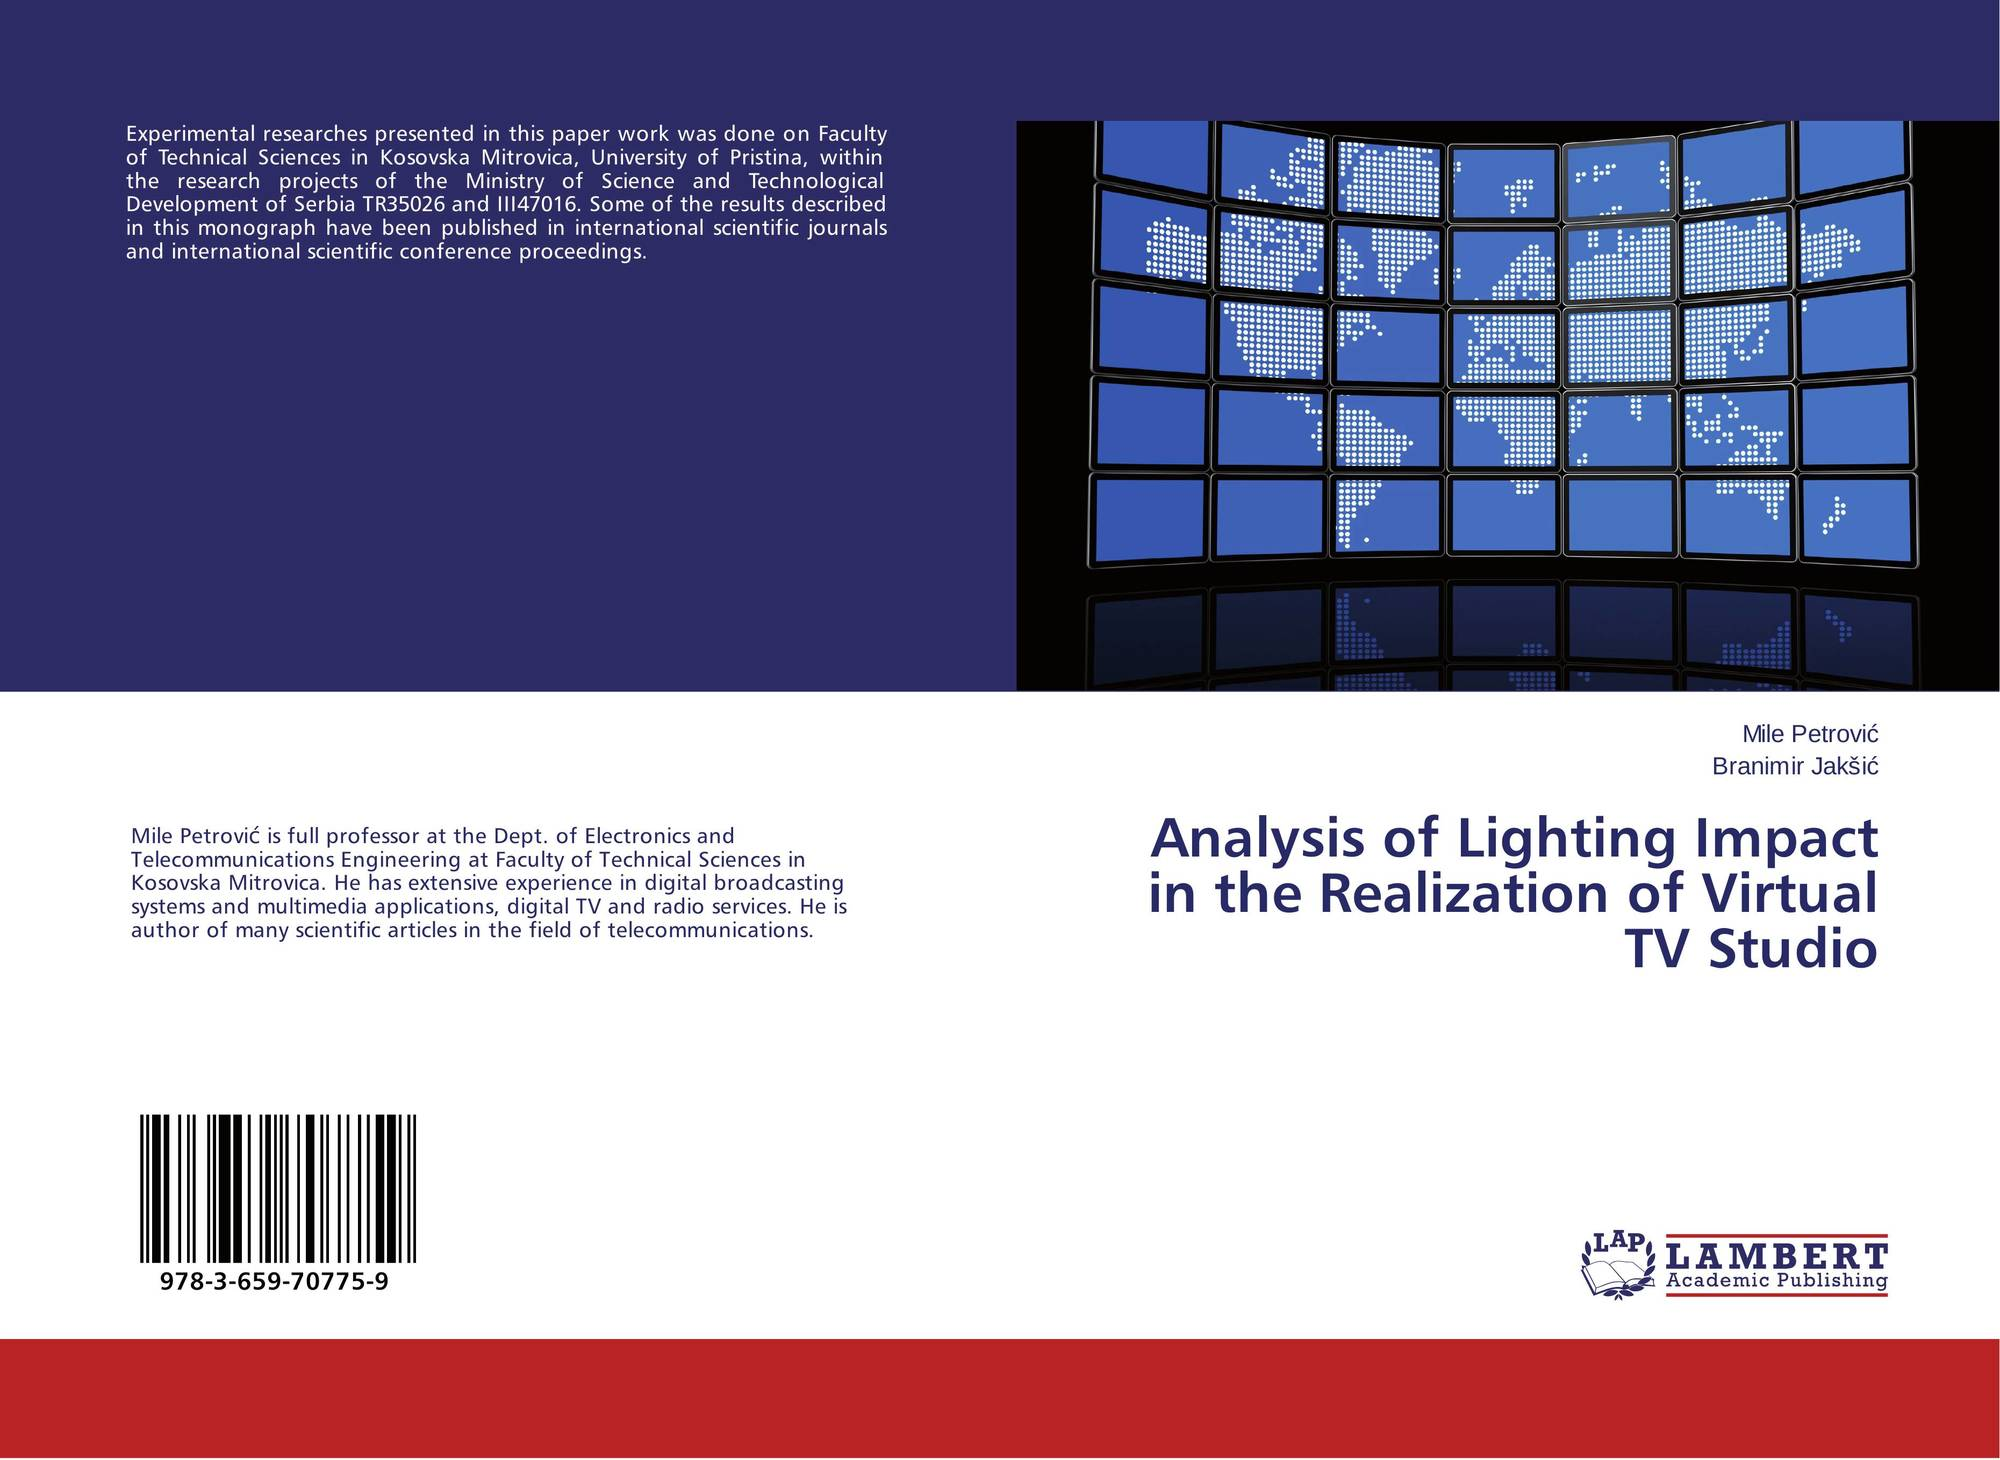 an analysis of a book about the global broadcasting systems Broadcasting equipment market: global industry analysis and forecast global industry analysis and forecast to cisco systems inc, ericsson ab.